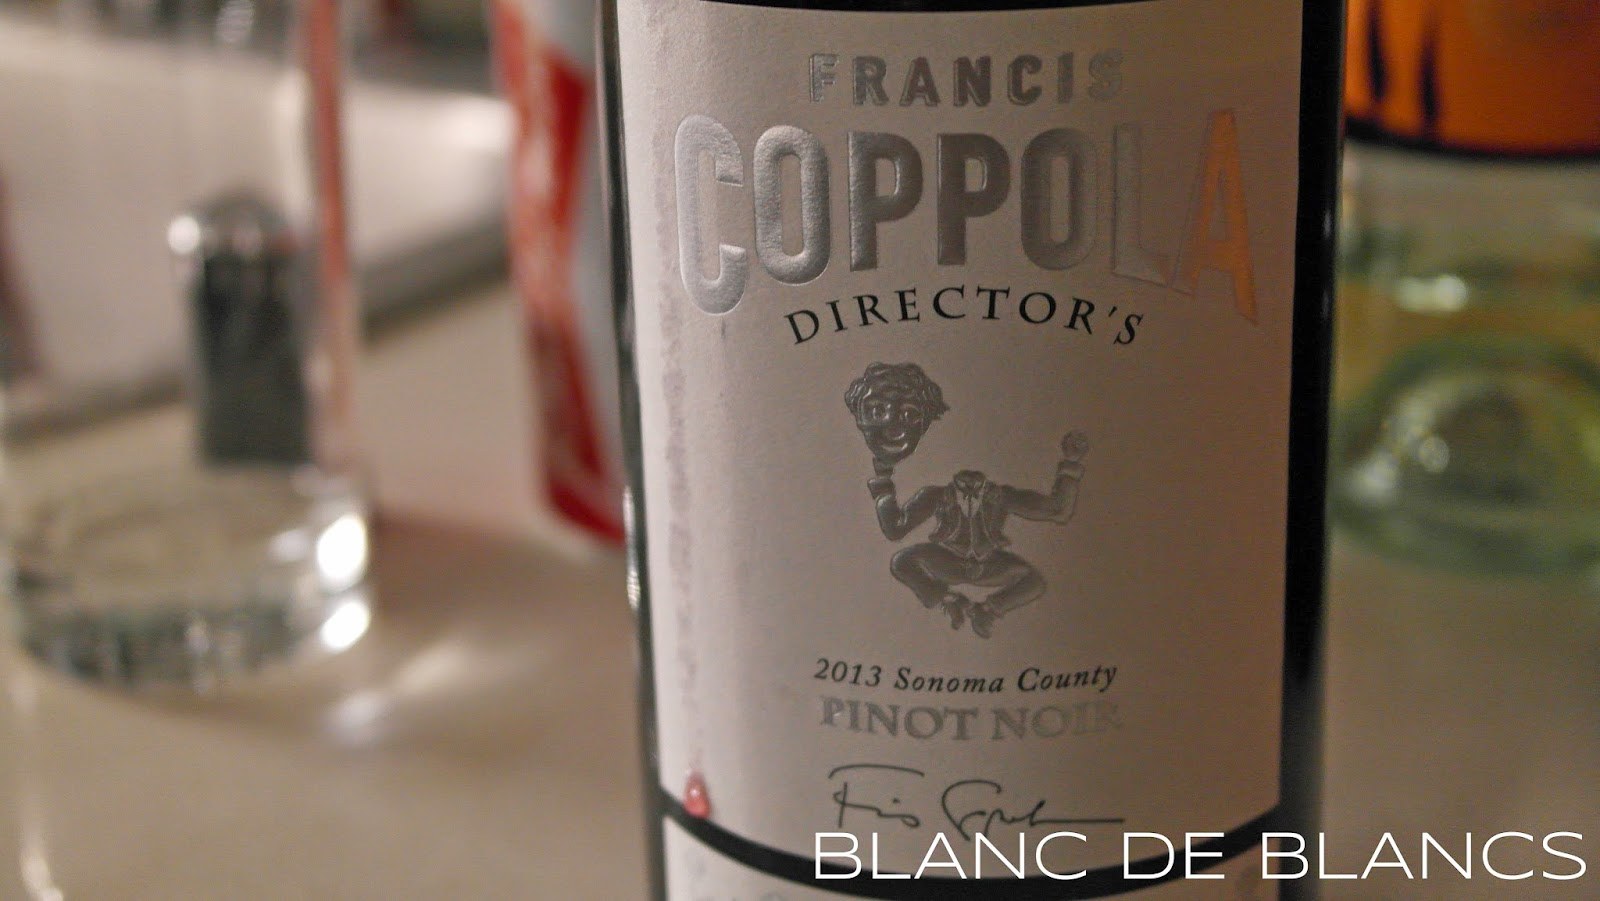 Francis Coppola Director's Pinot Noir 2013 - www.blancdeblancs.fi